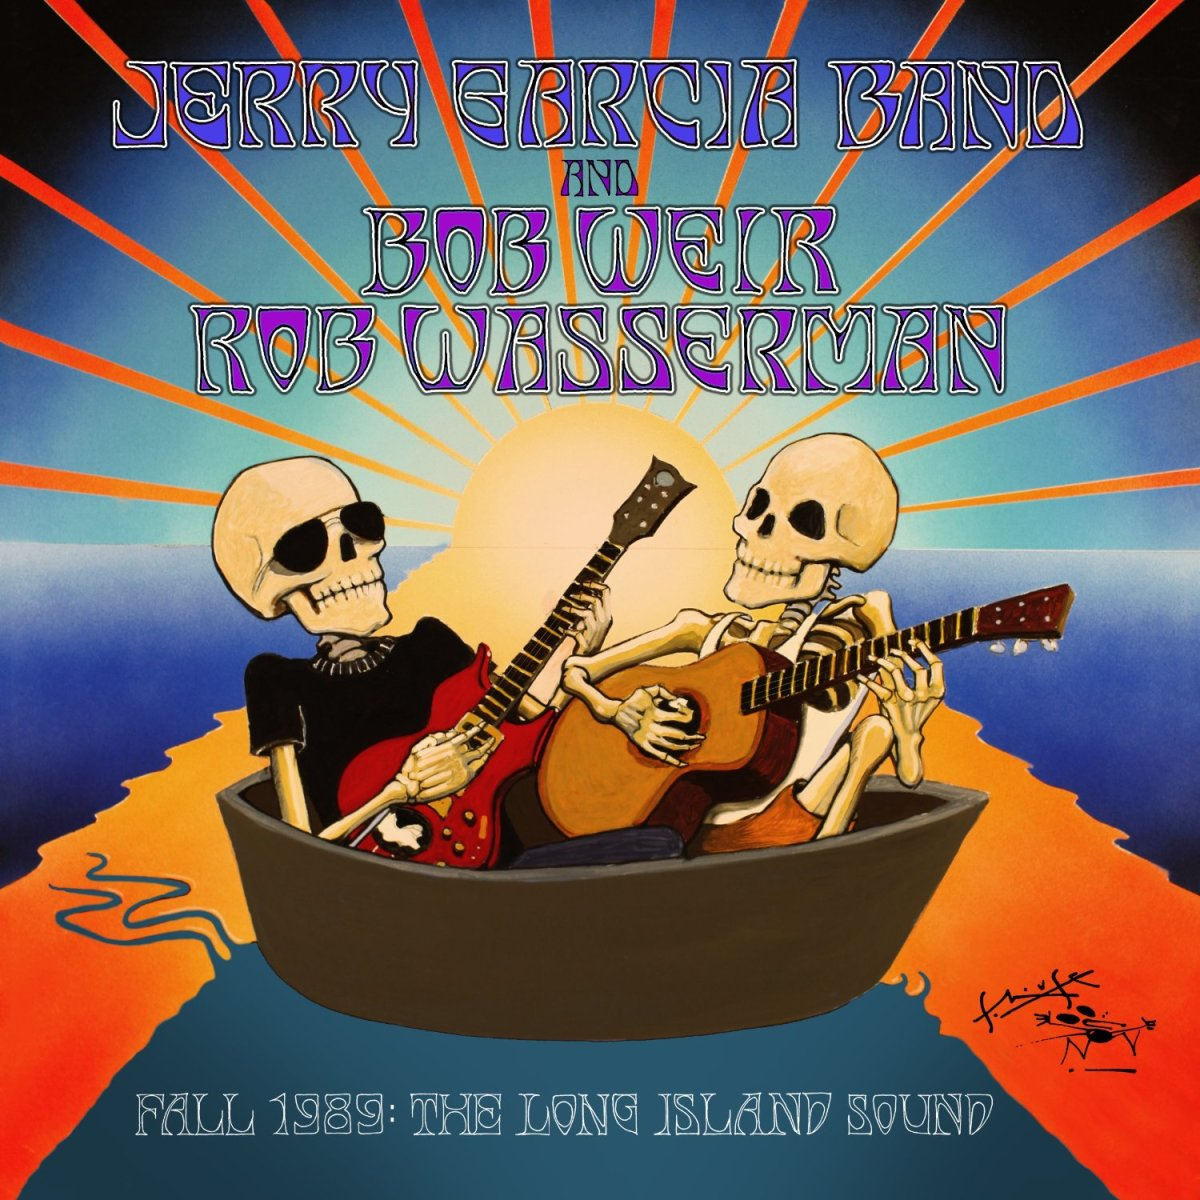 "Jerry Garcia Band, Bob Weir and Rob Wasserman ""Fall 1989: The Long Island Sound""  ATO Records 6 CD Box Set (2013) Recorded 1989 Released 2013"